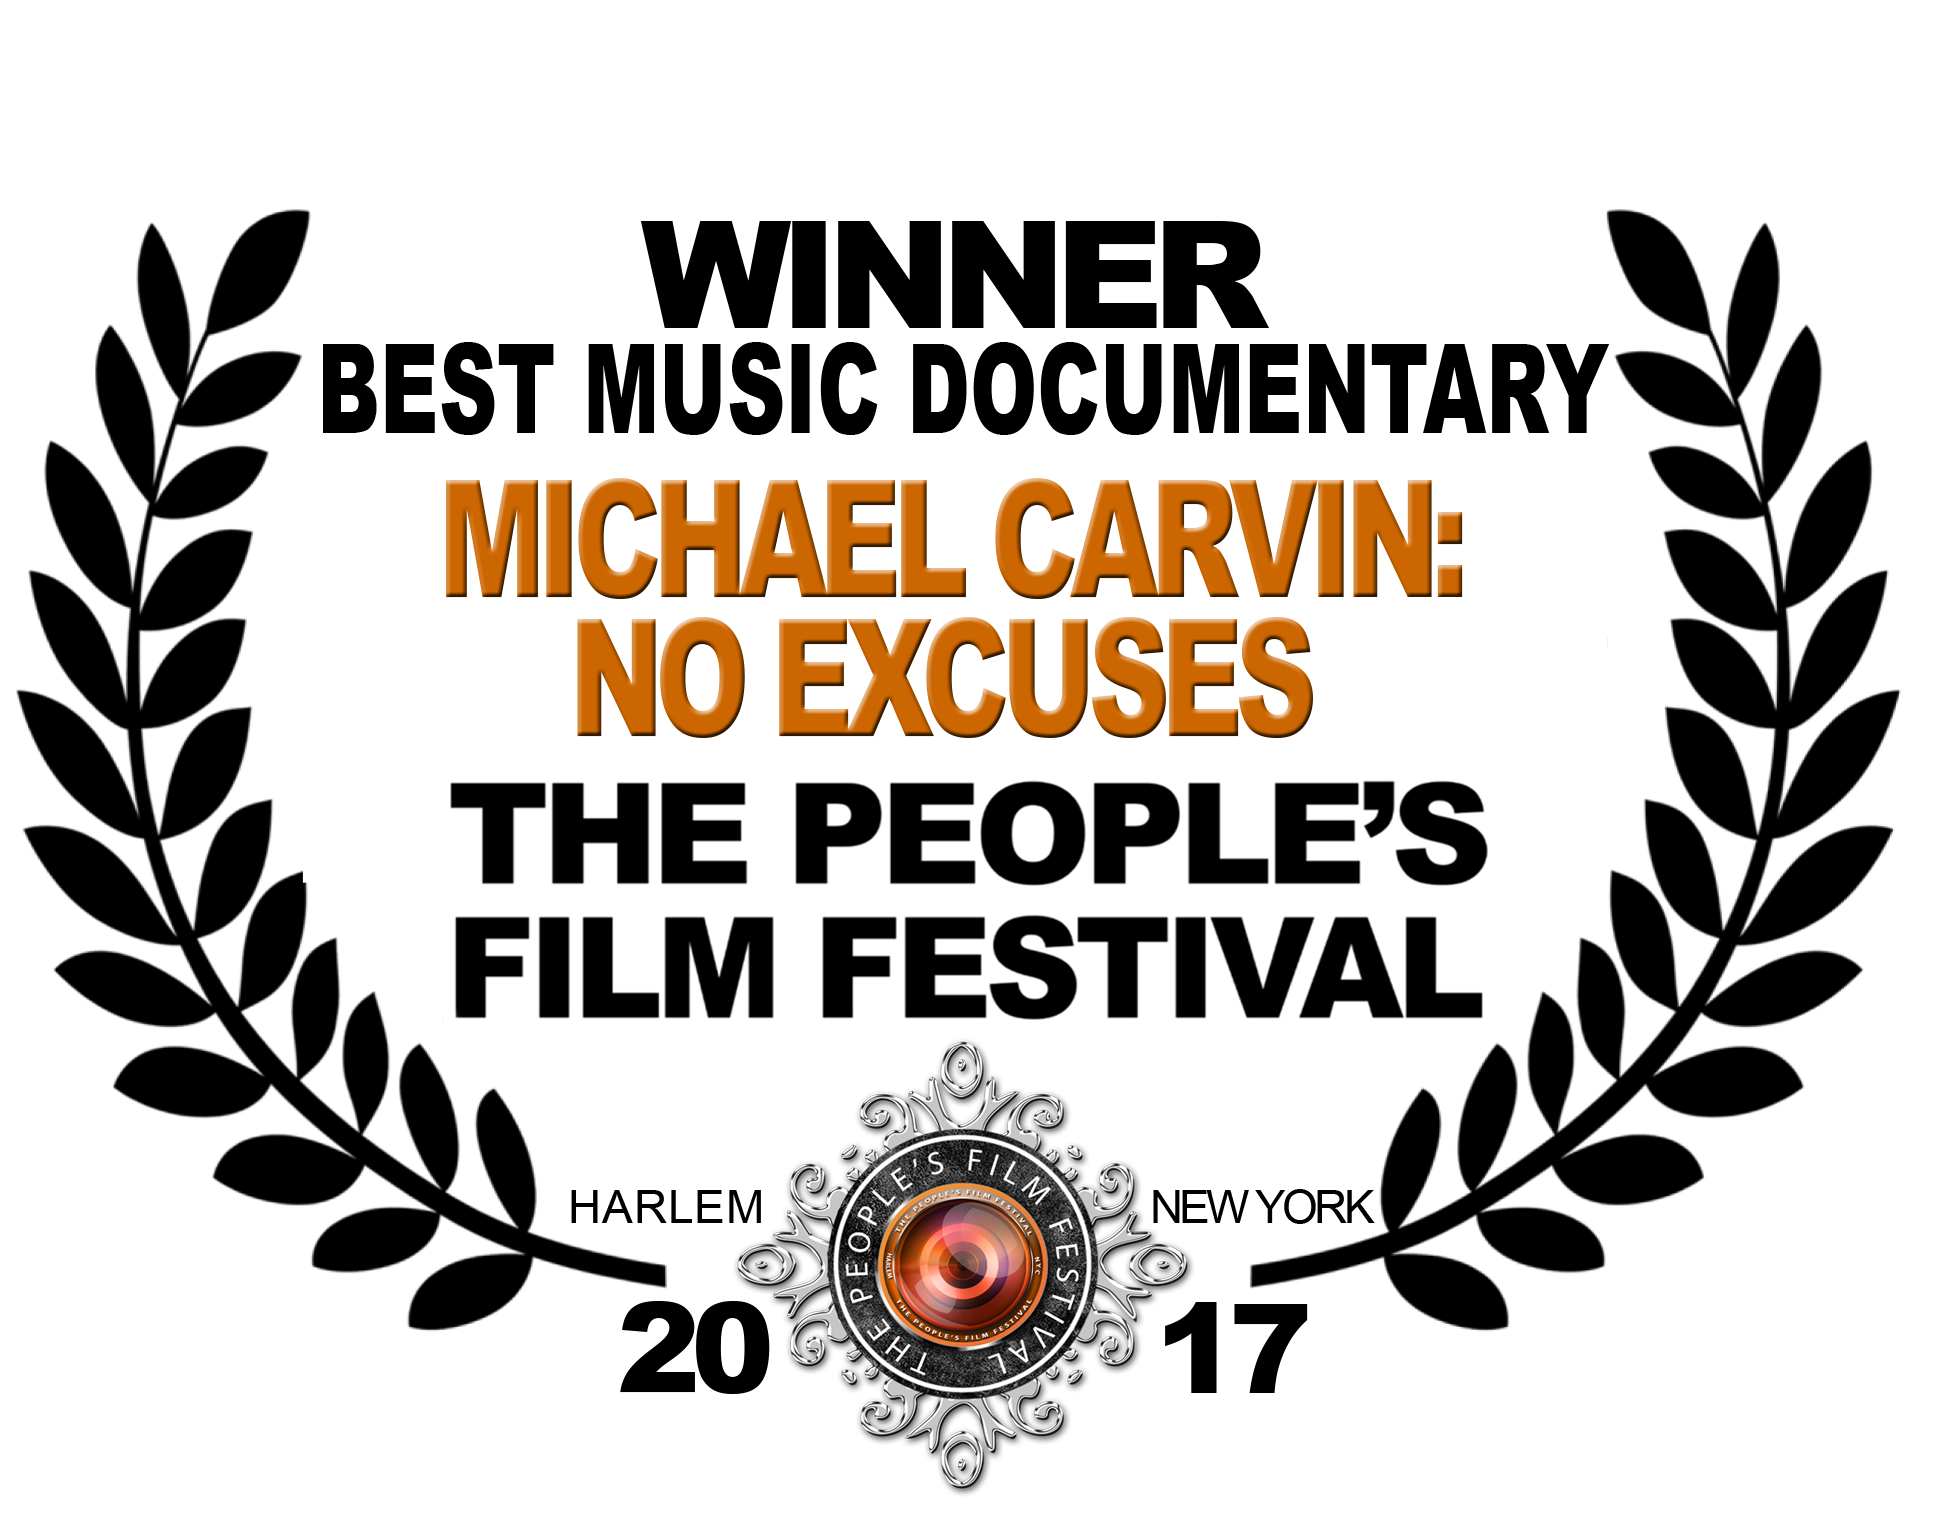 2017 TPFF BEST MUSIC DOCUMENTARY  MICHAEL CARVIN NO EXCUSES  BLK.png